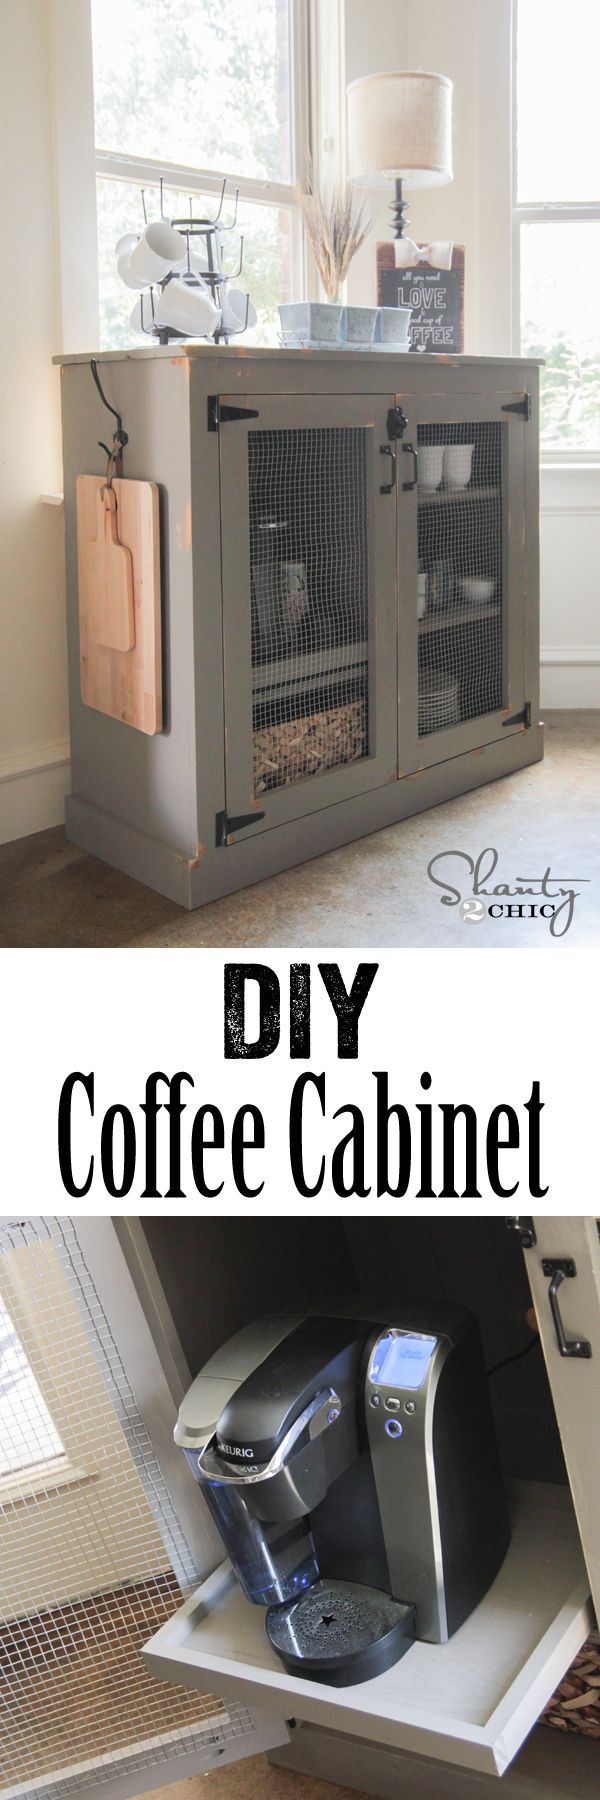 DIY Coffee Cabinet Bar - Free Woodworking Plans and Tutorial www.shanty-2-chic.com